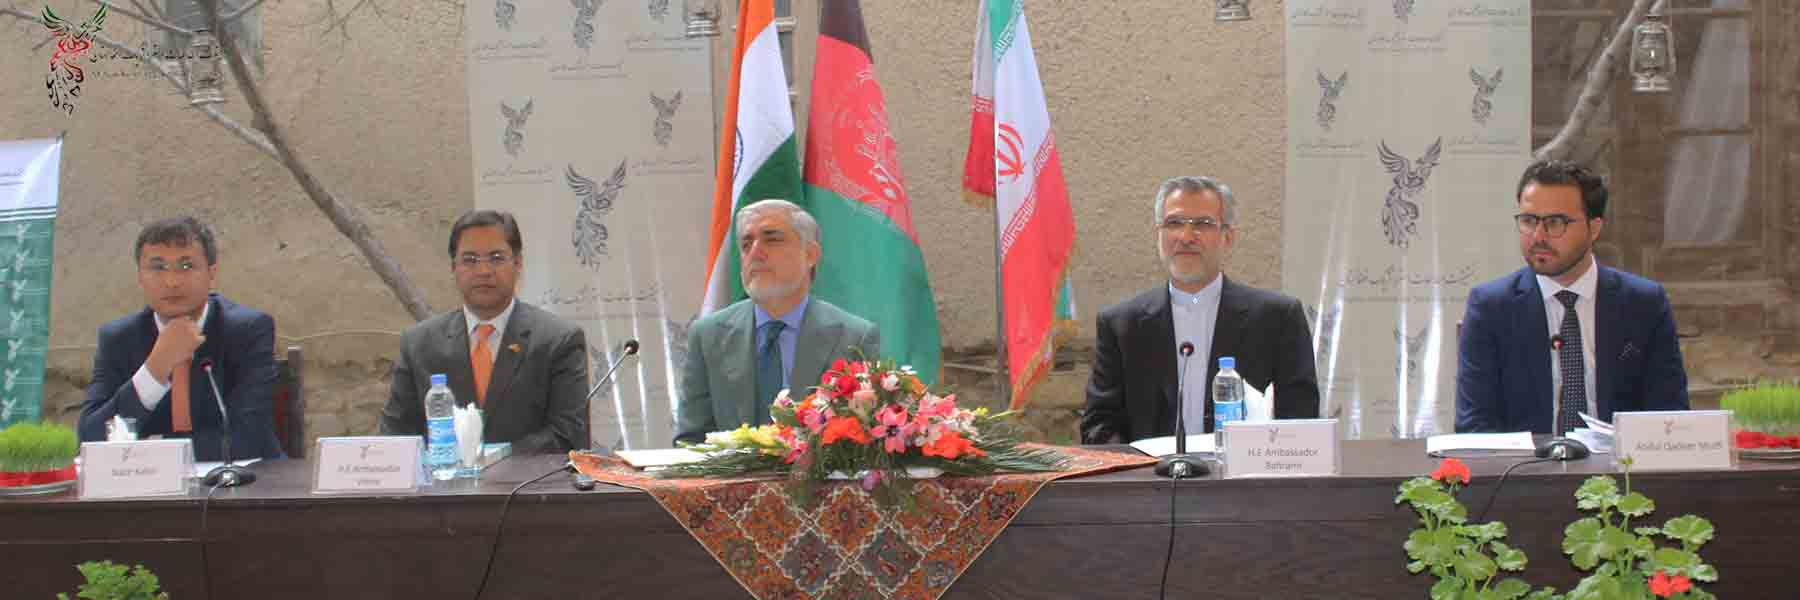 Launching ceremony of AISS's Research Paper on Chabahar Port